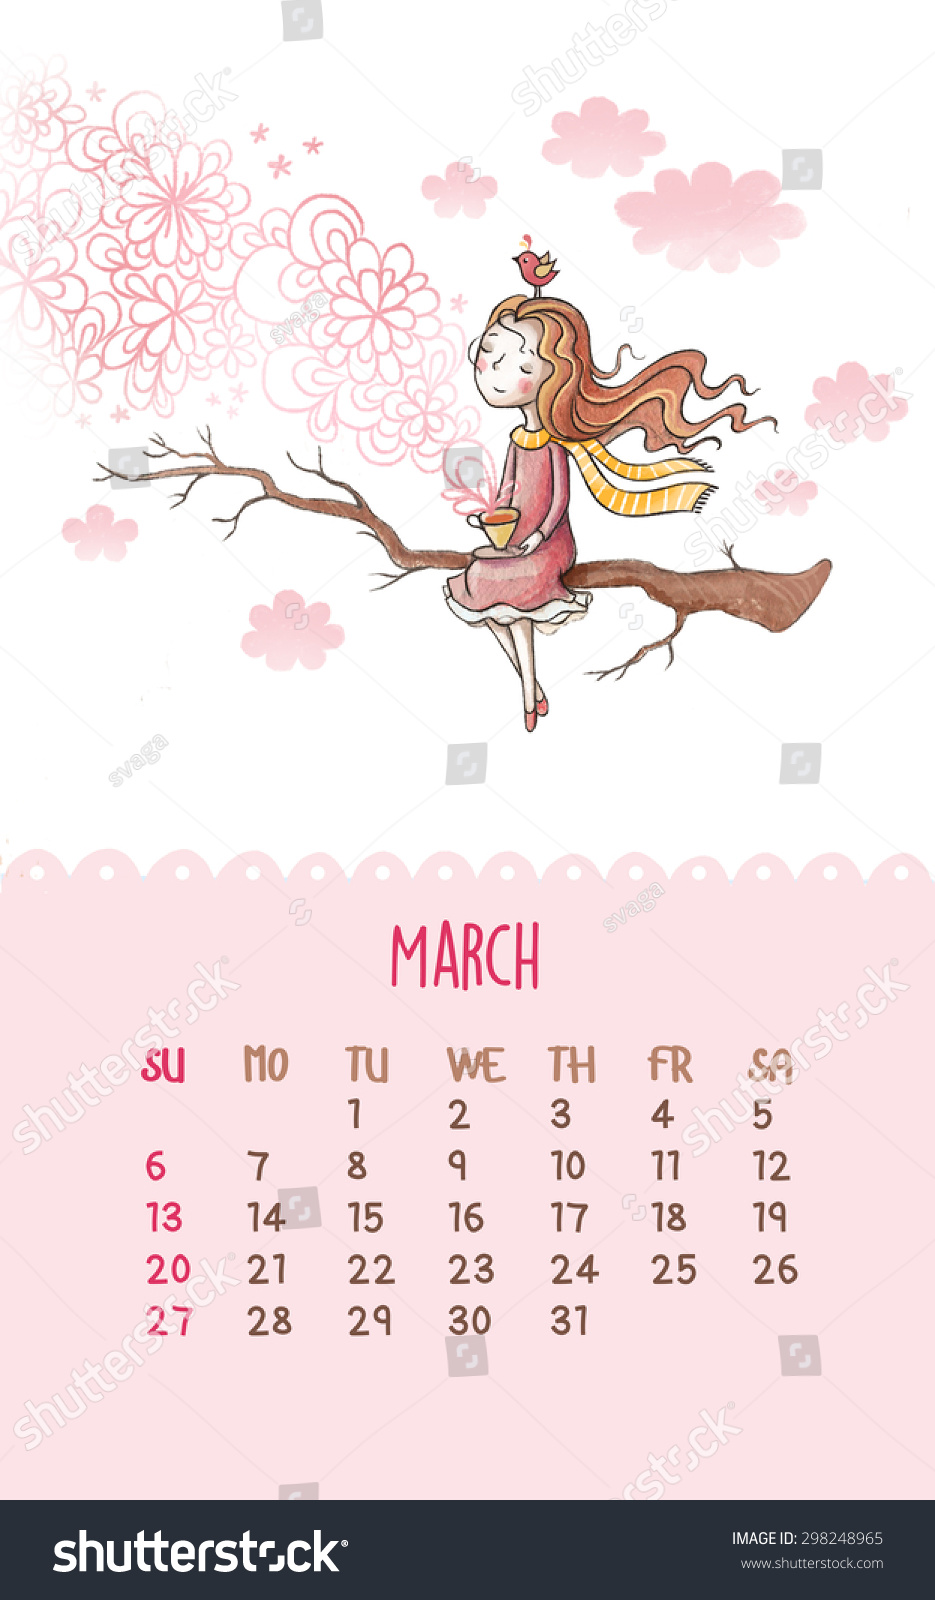 Cute Calendar Illustration : Cute calendar cartoon hand drawing stock illustration